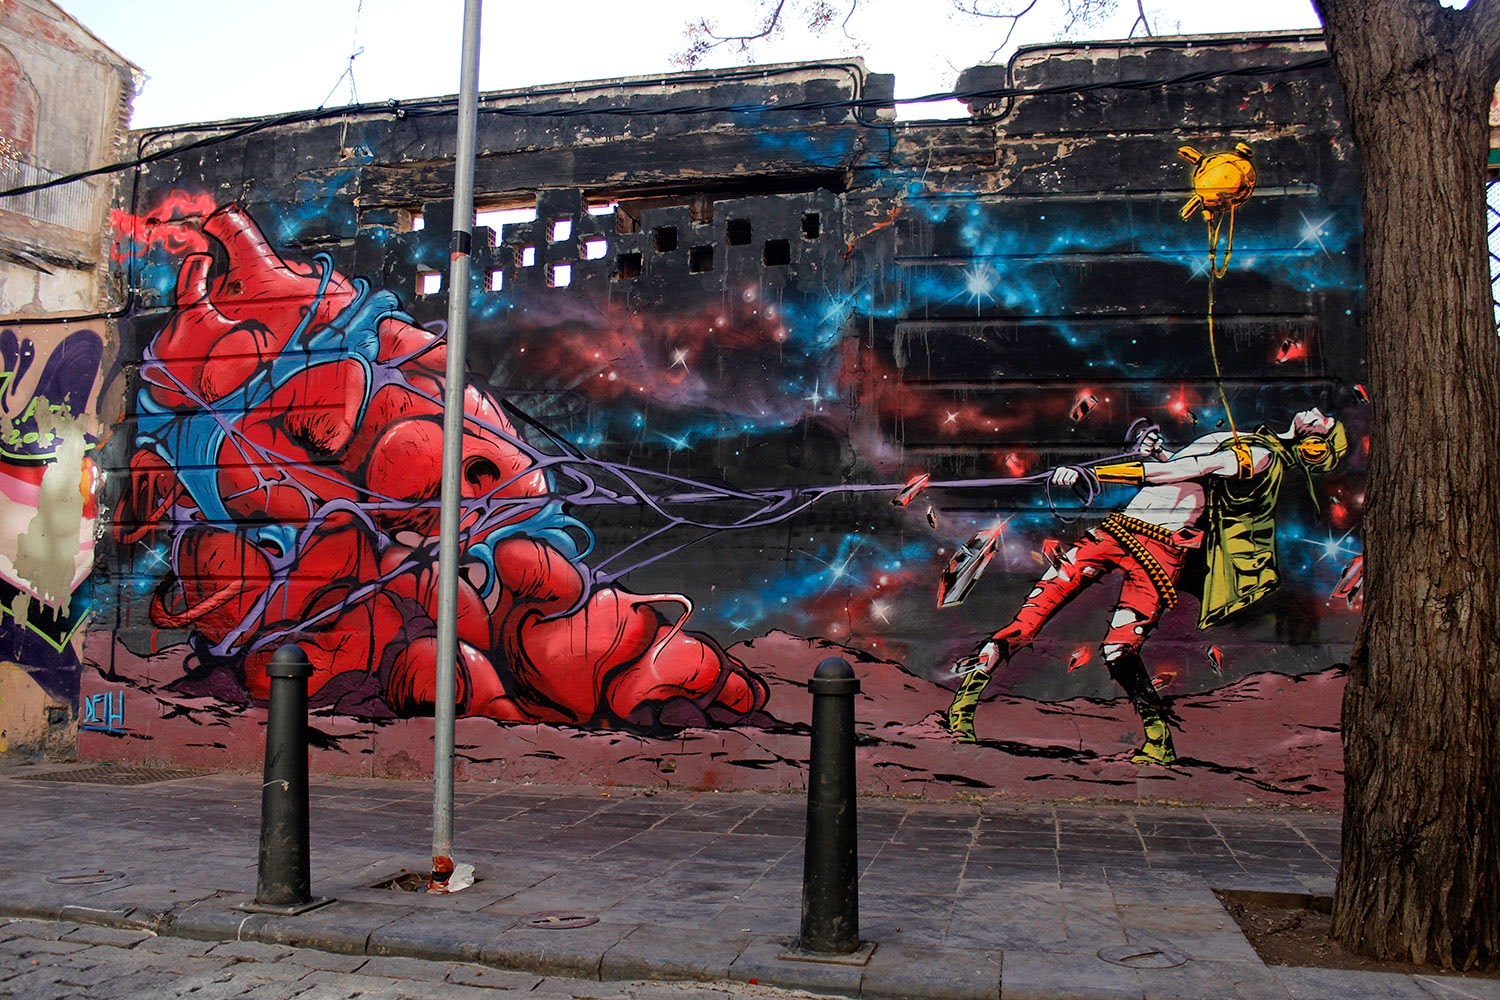 Our friend Deih is currently in his hometown of Valencia in Spain where he just wrapped up two brand new murals.